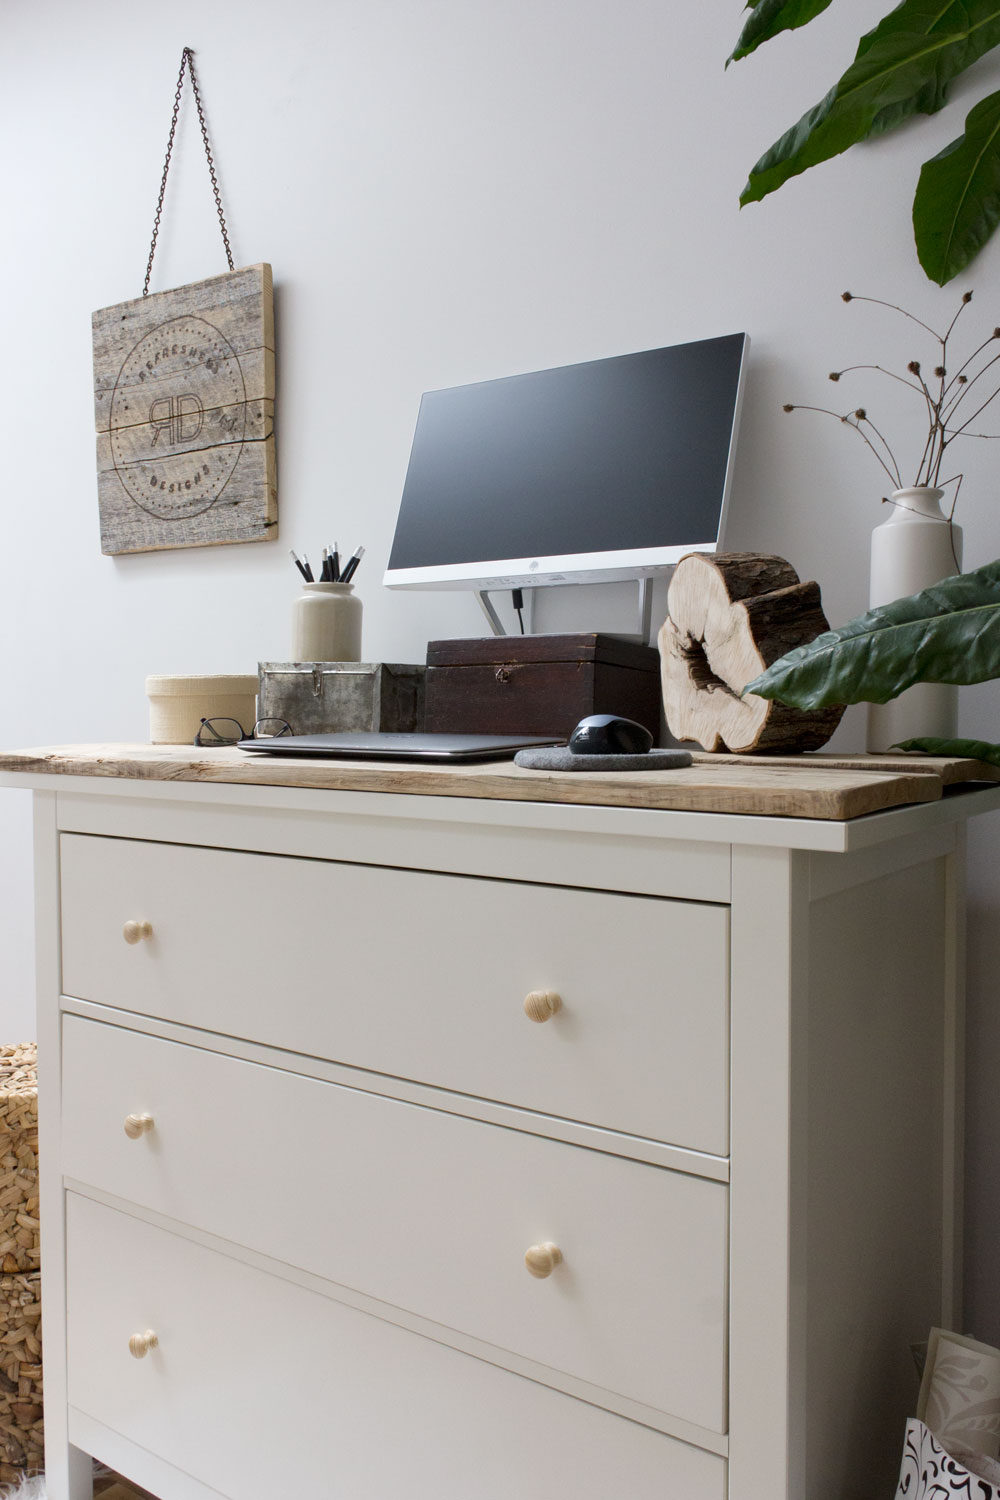 How to Maintain Balance When Working From Home